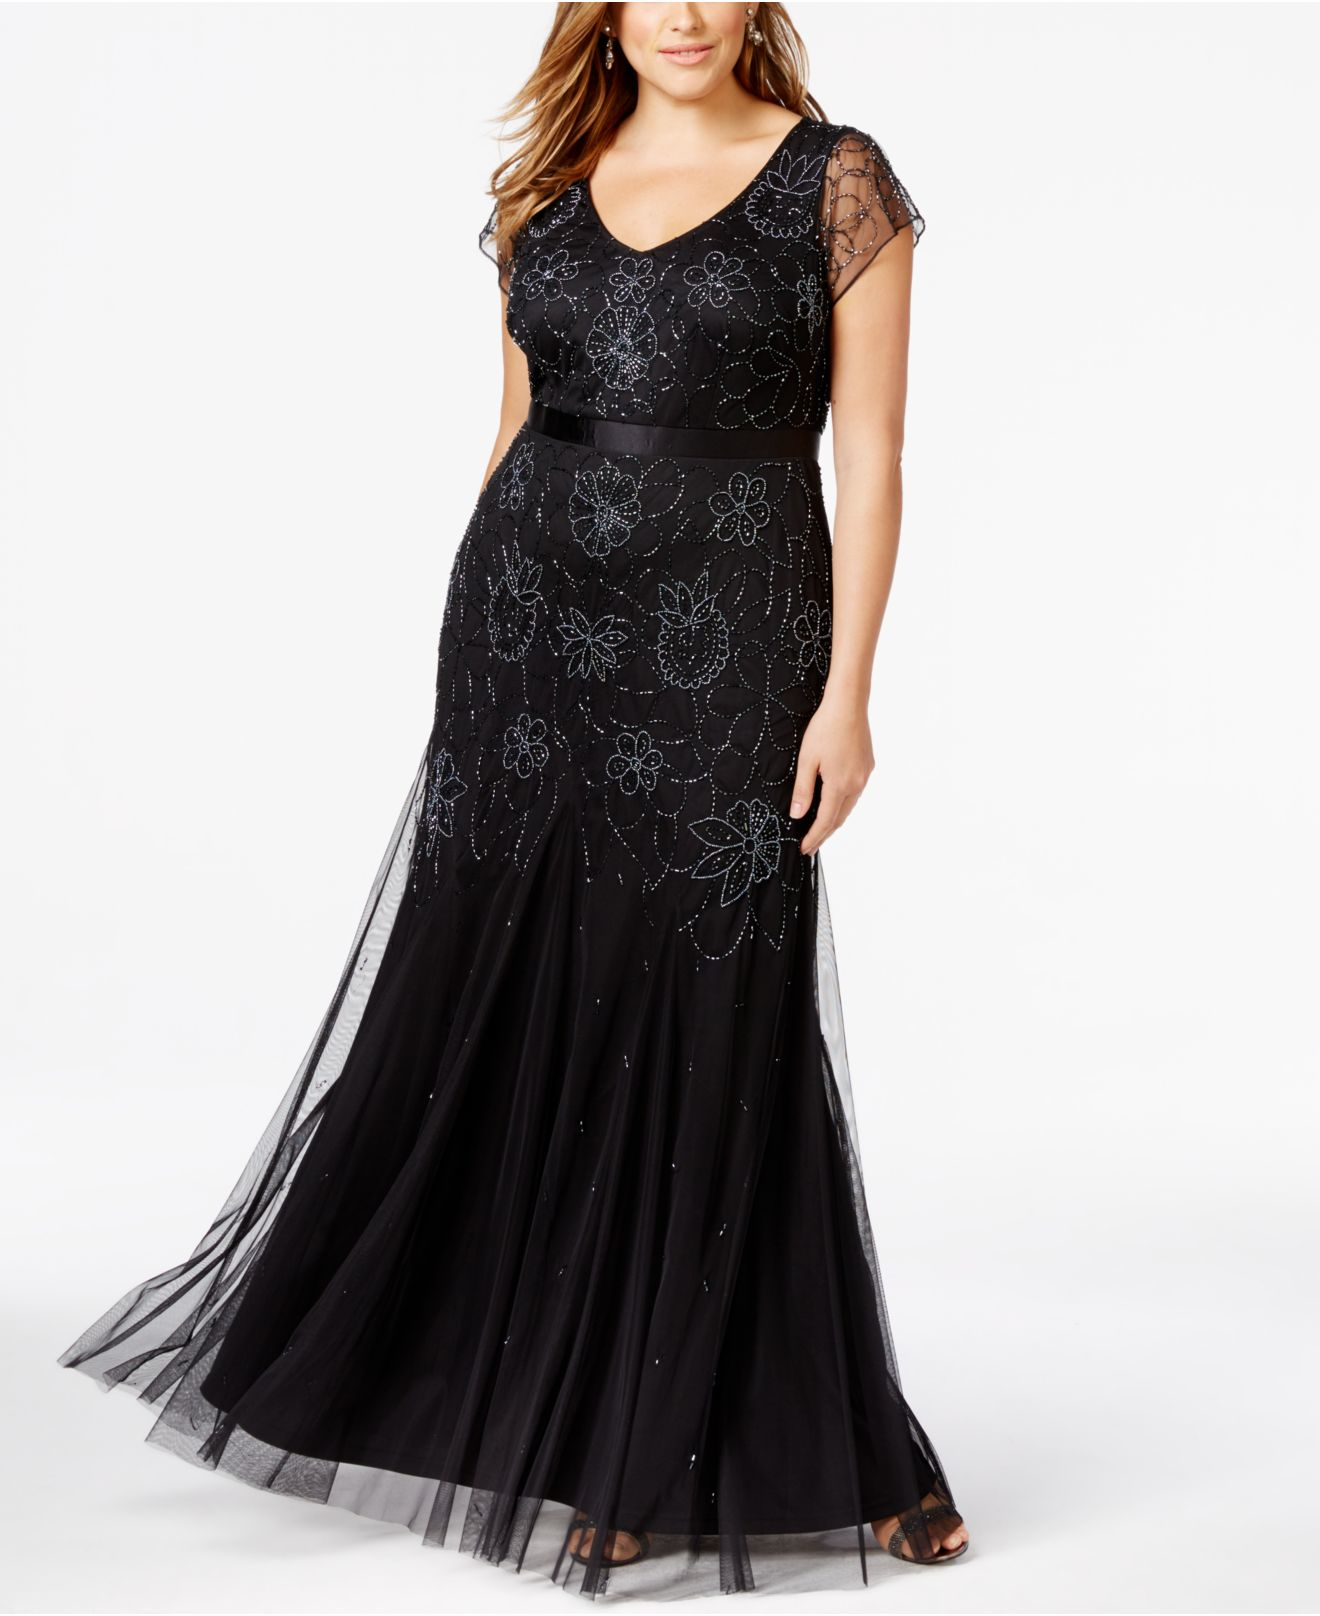 Lyst Adrianna Papell Plus Size Beaded Cap Sleeve Gown In